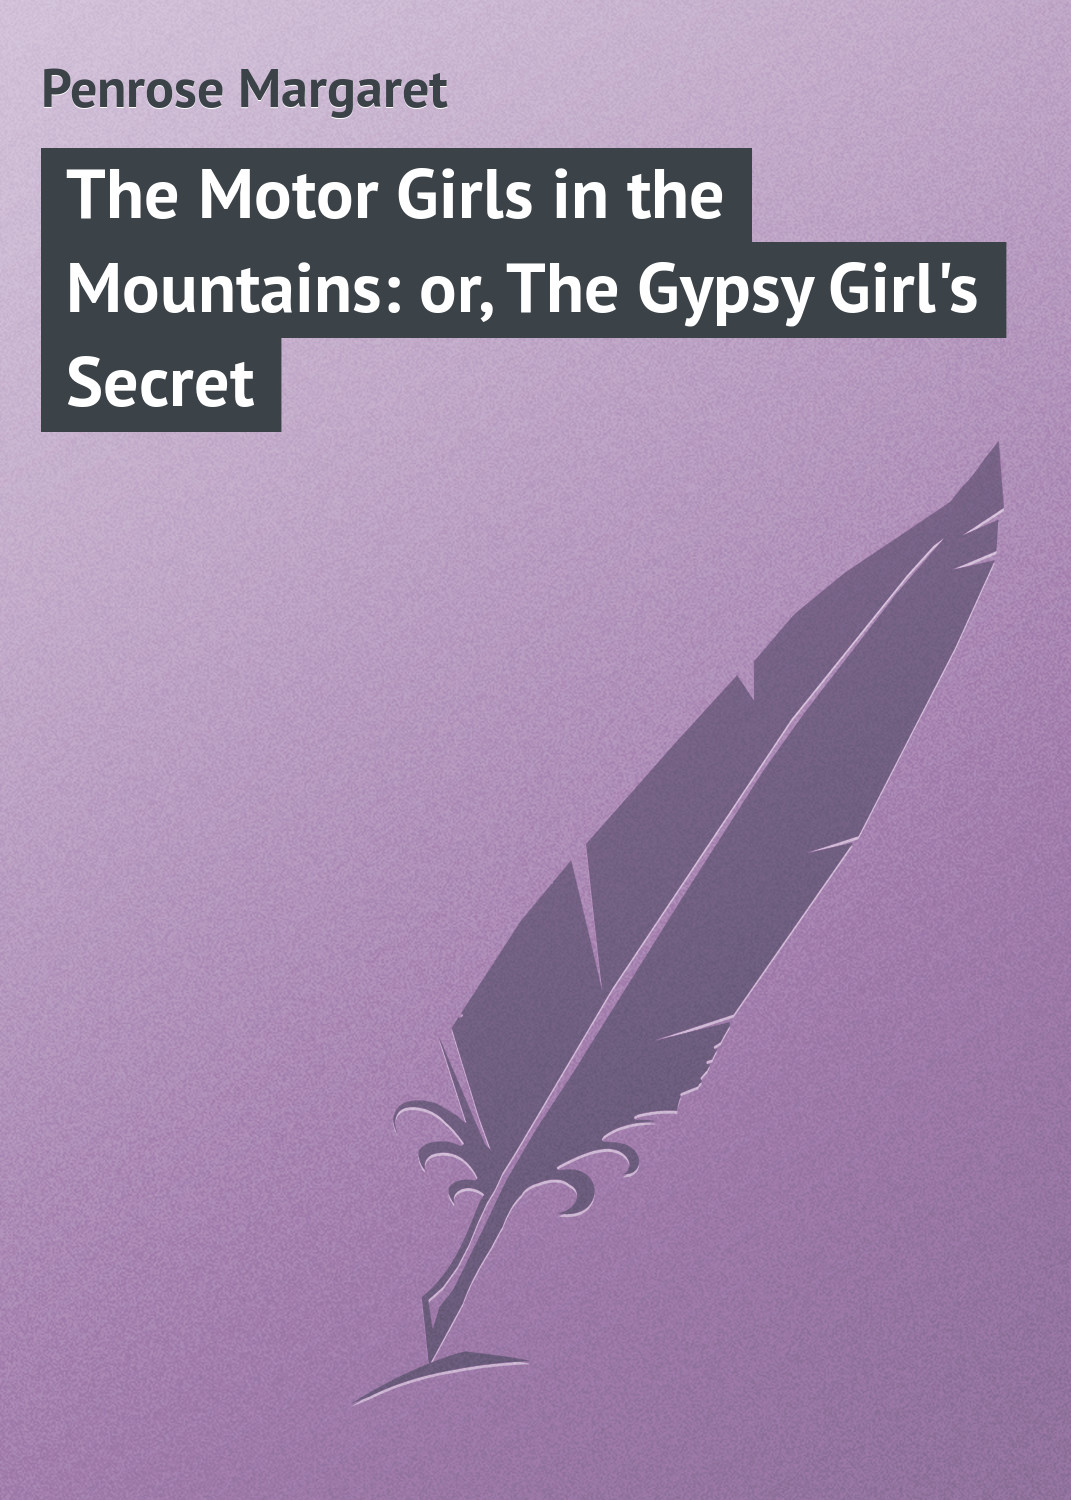 Penrose Margaret The Motor Girls in the Mountains: or, The Gypsy Girl's Secret